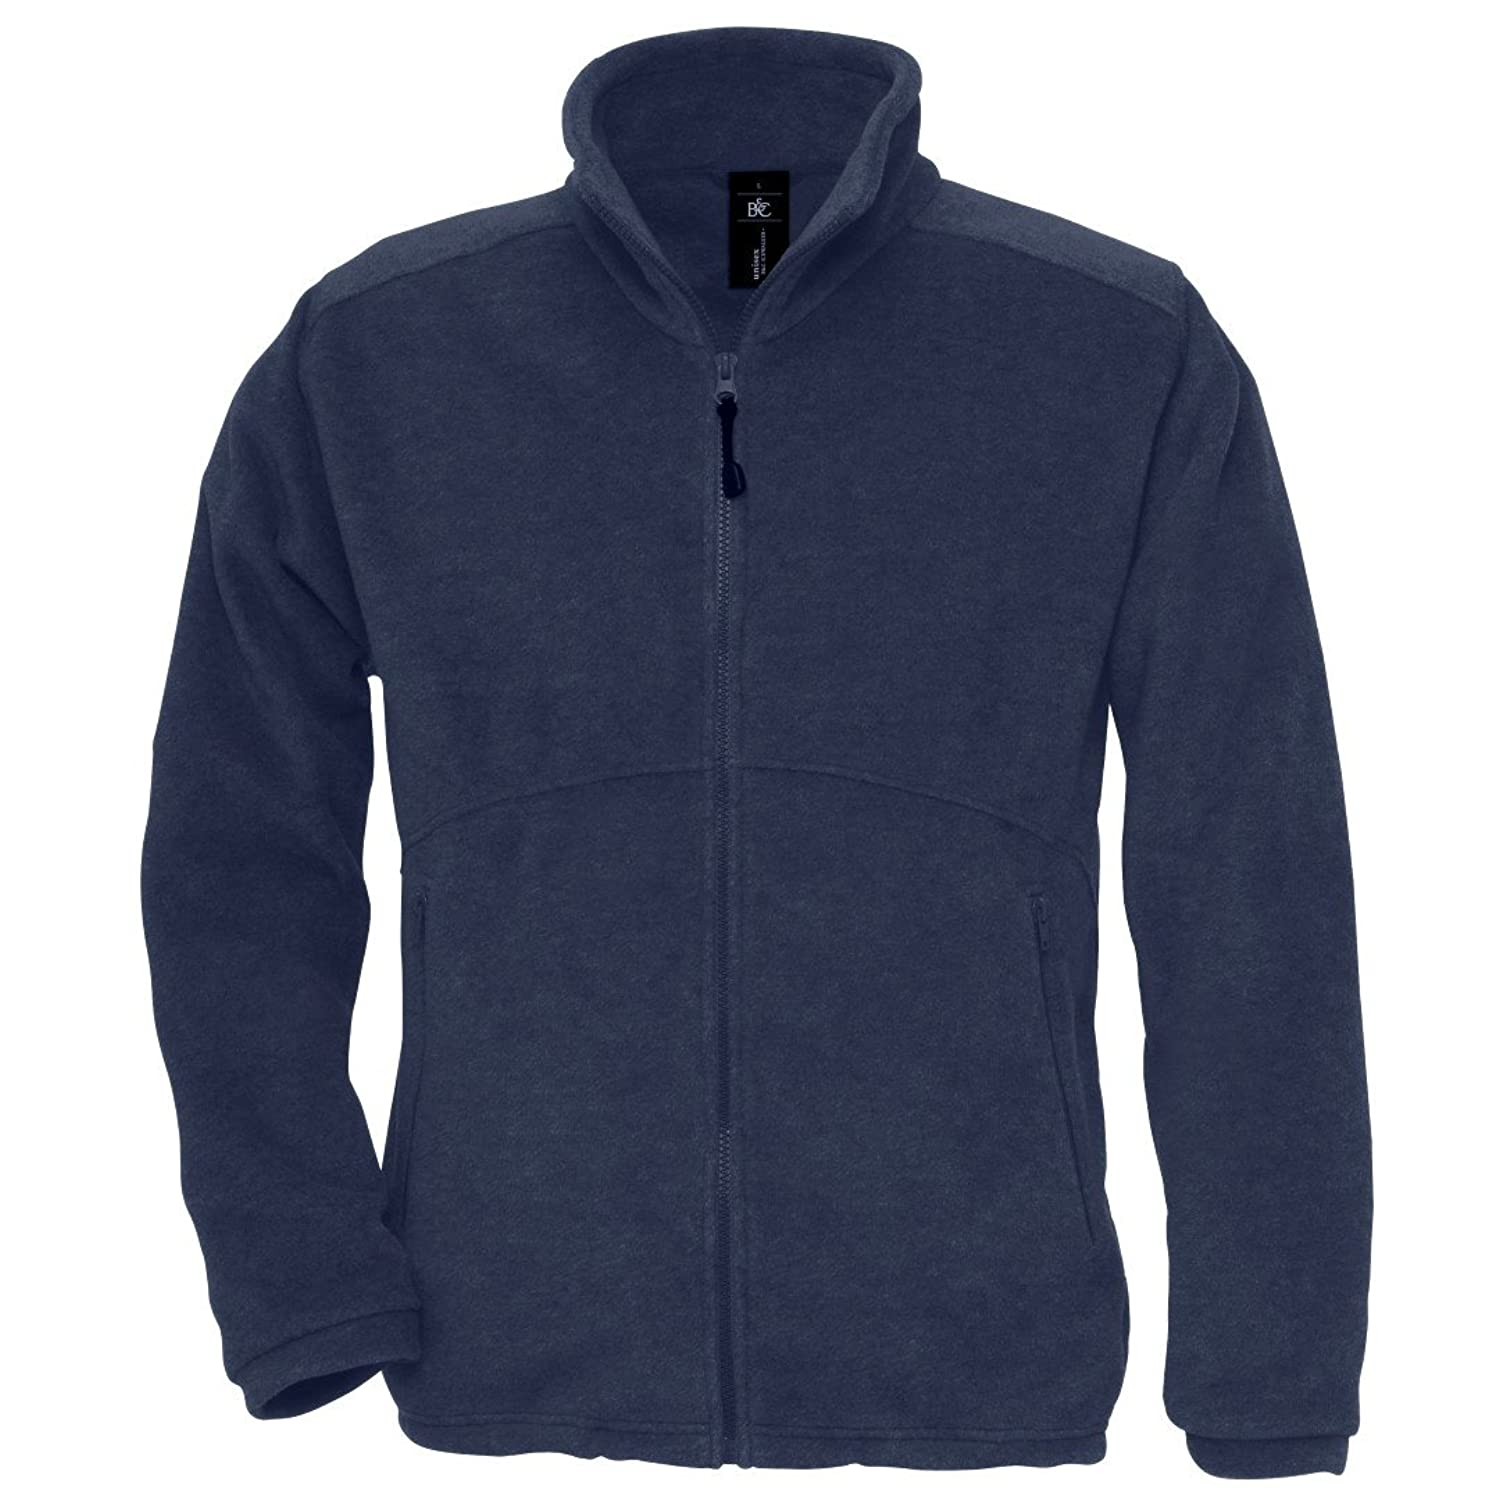 B&C Collection Mens Ba501 Icewalker+ Fleece Jacket Navy M